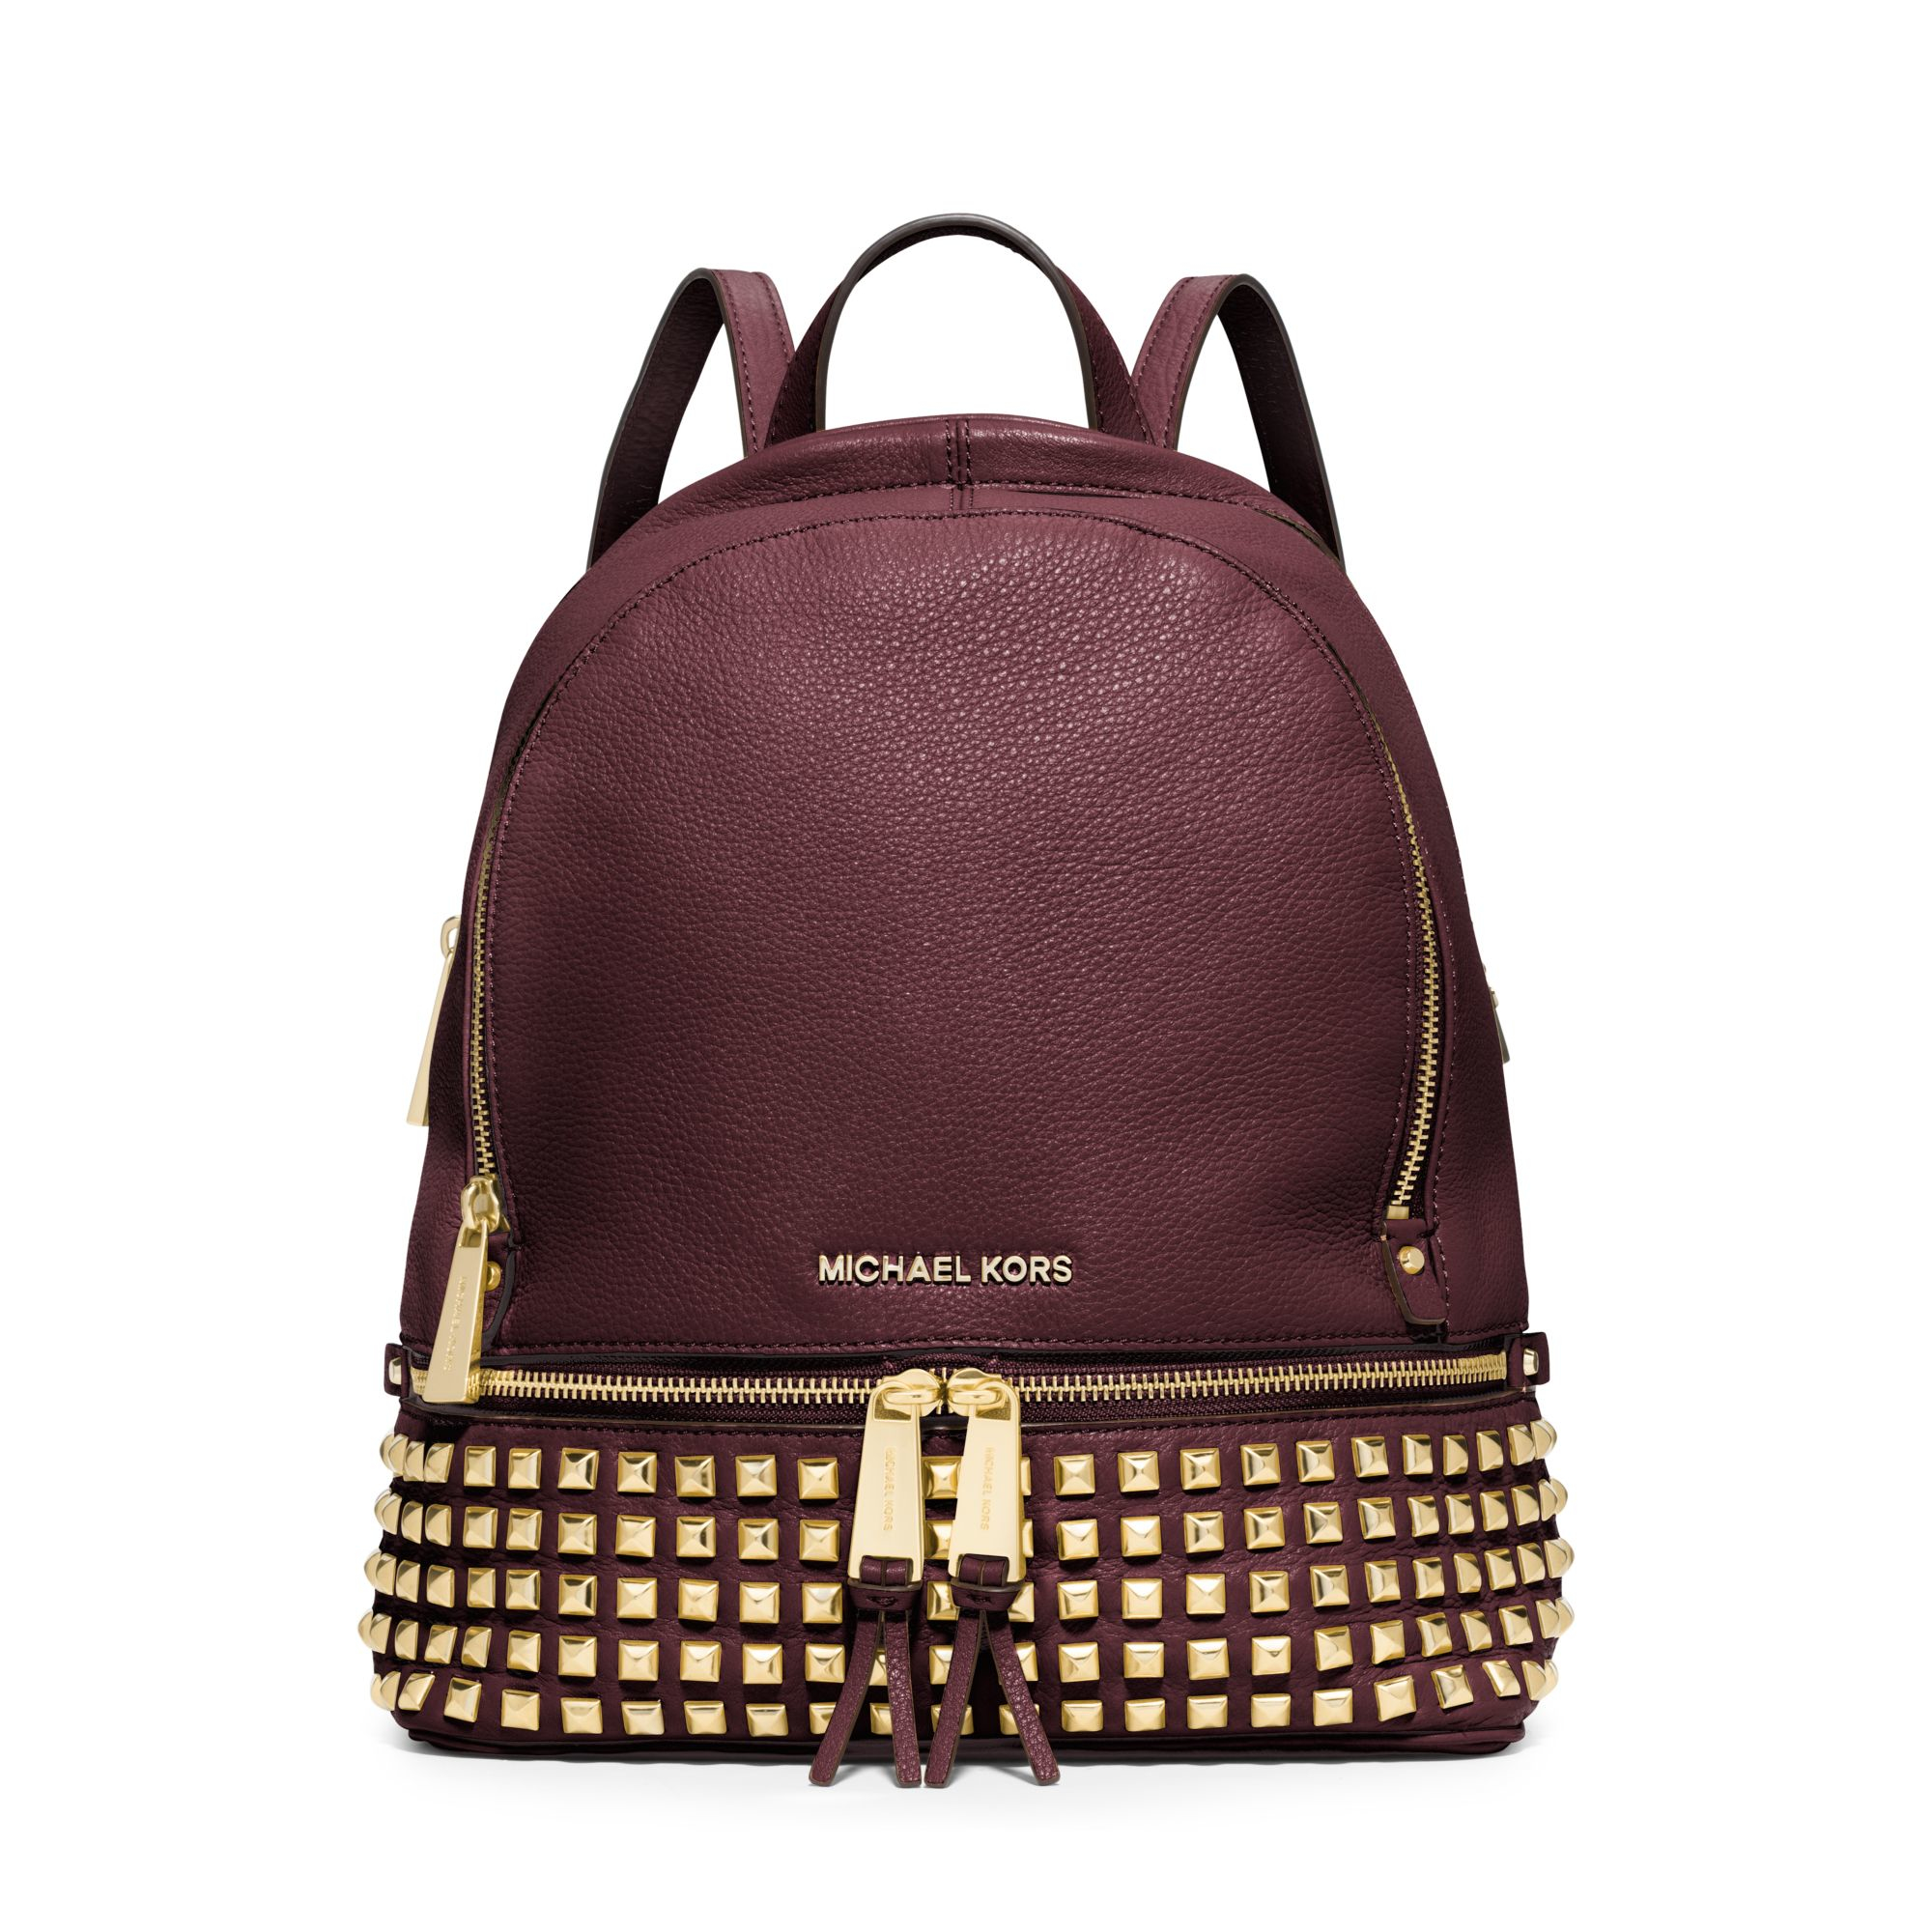 michael kors rhea small studded leather backpack in purple. Black Bedroom Furniture Sets. Home Design Ideas